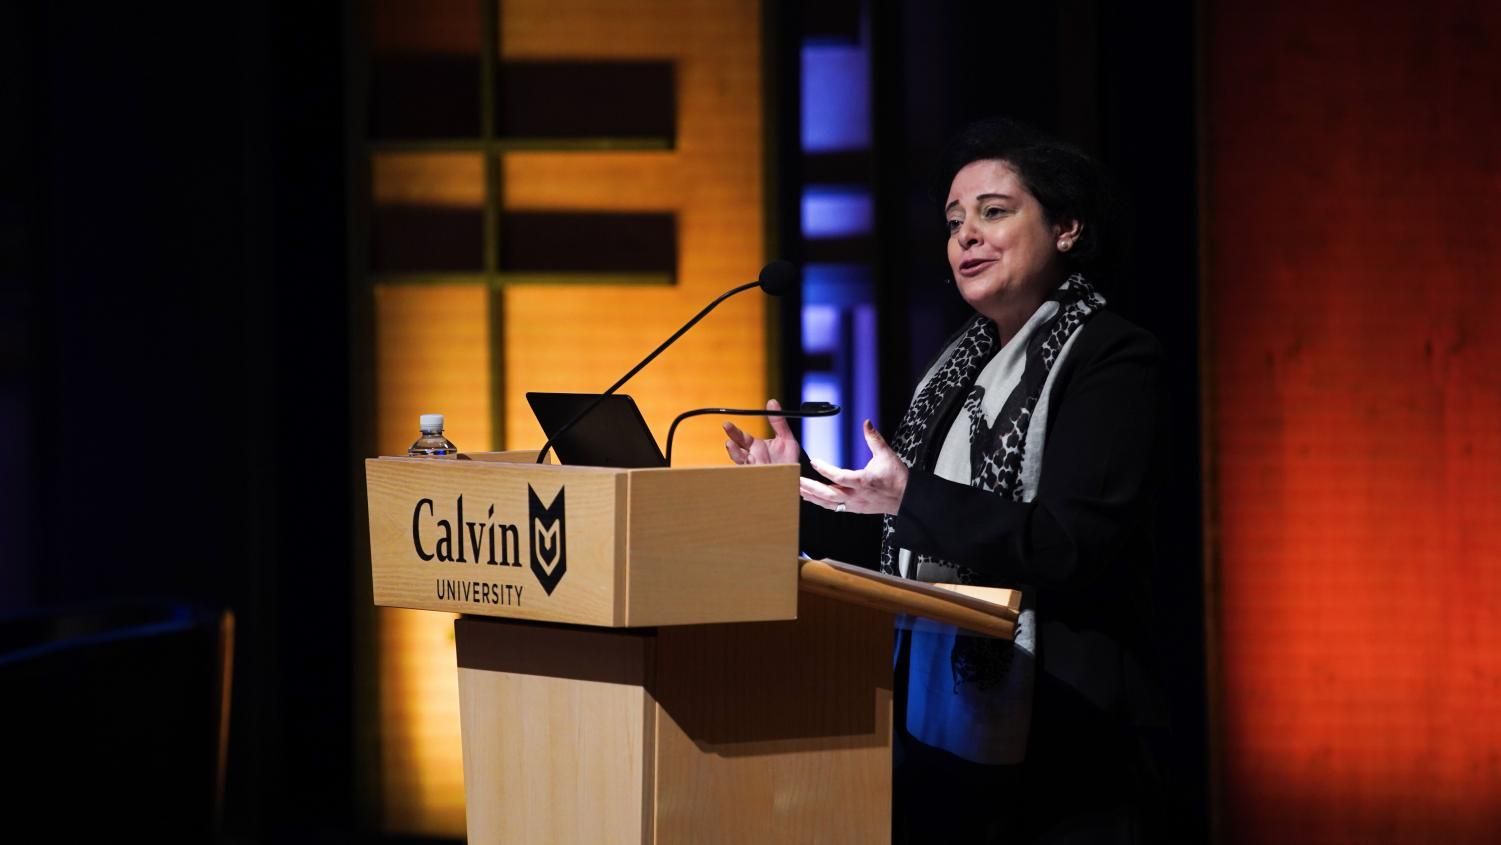 Najla Kassab discussed six ways in which the Reformed church has an impact in the Middle East.